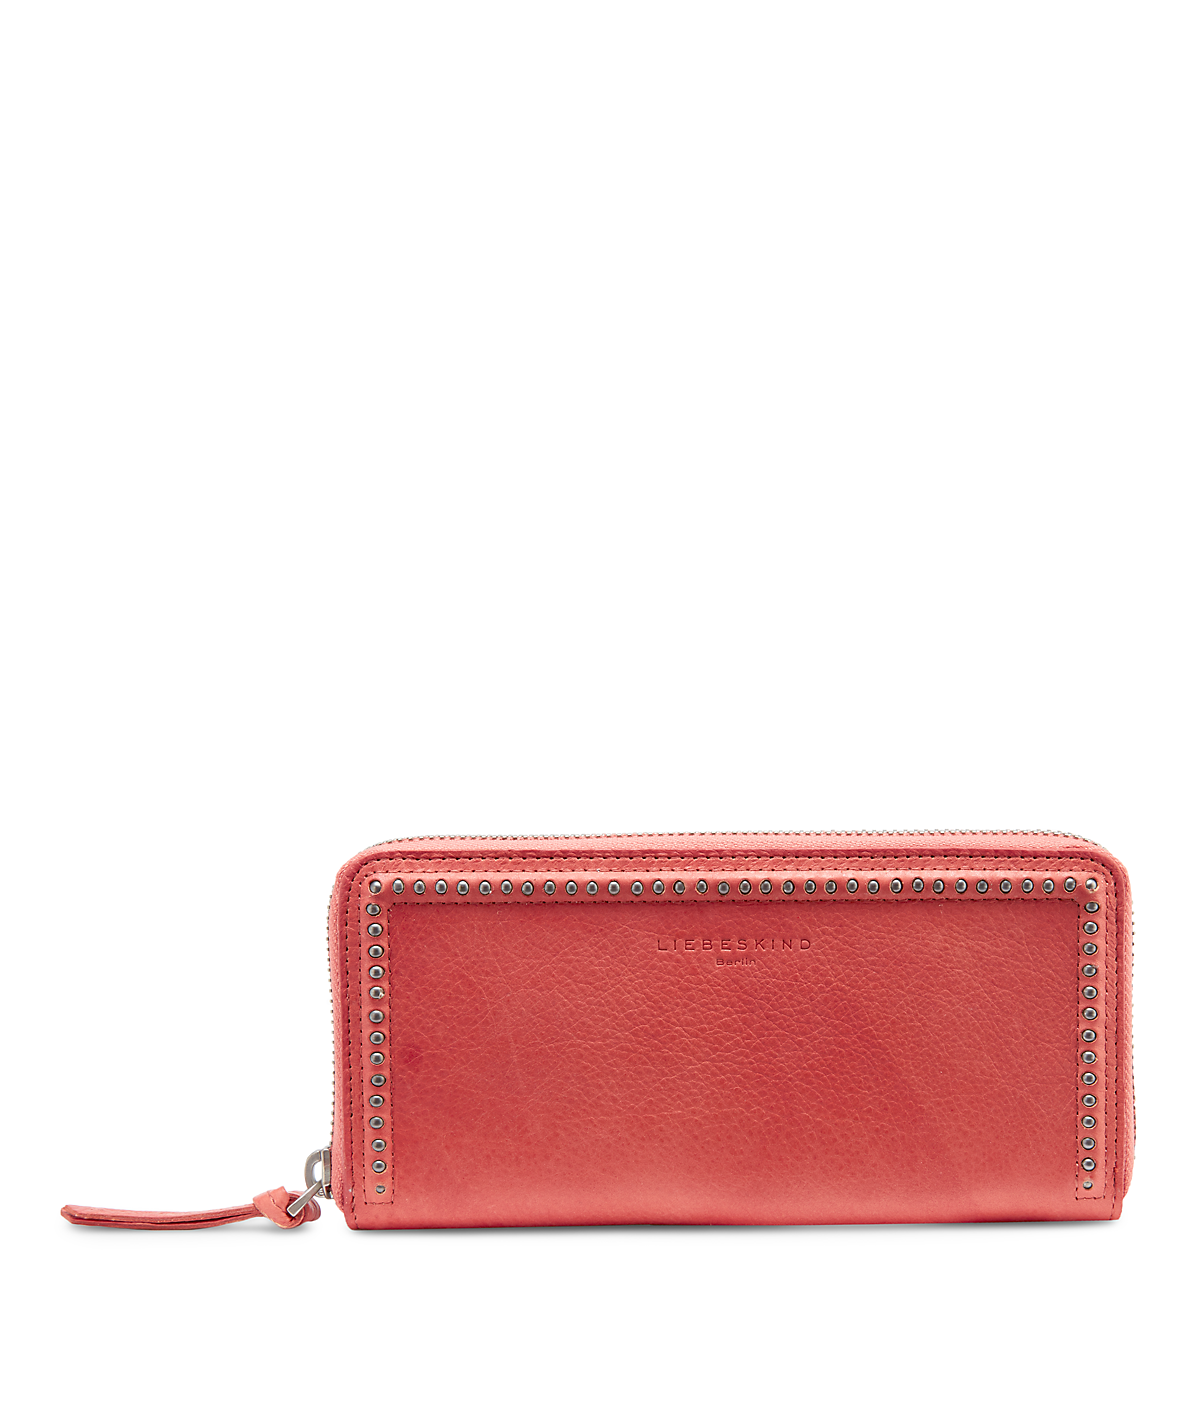 Sally studded wallet from liebeskind